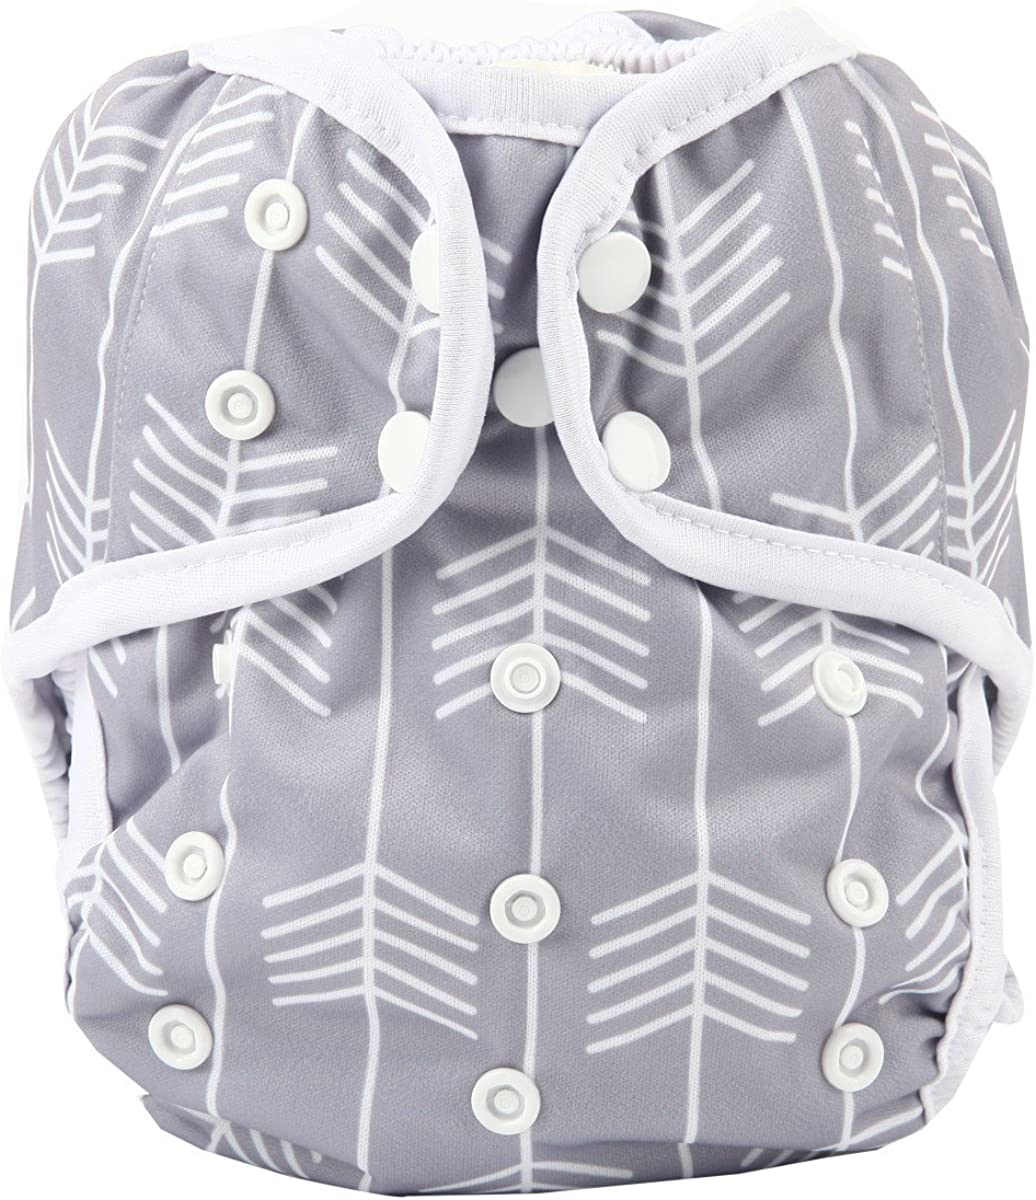 Sigzagor Baby Diaper Cover Nappy One Size 8lbs to 36lbs